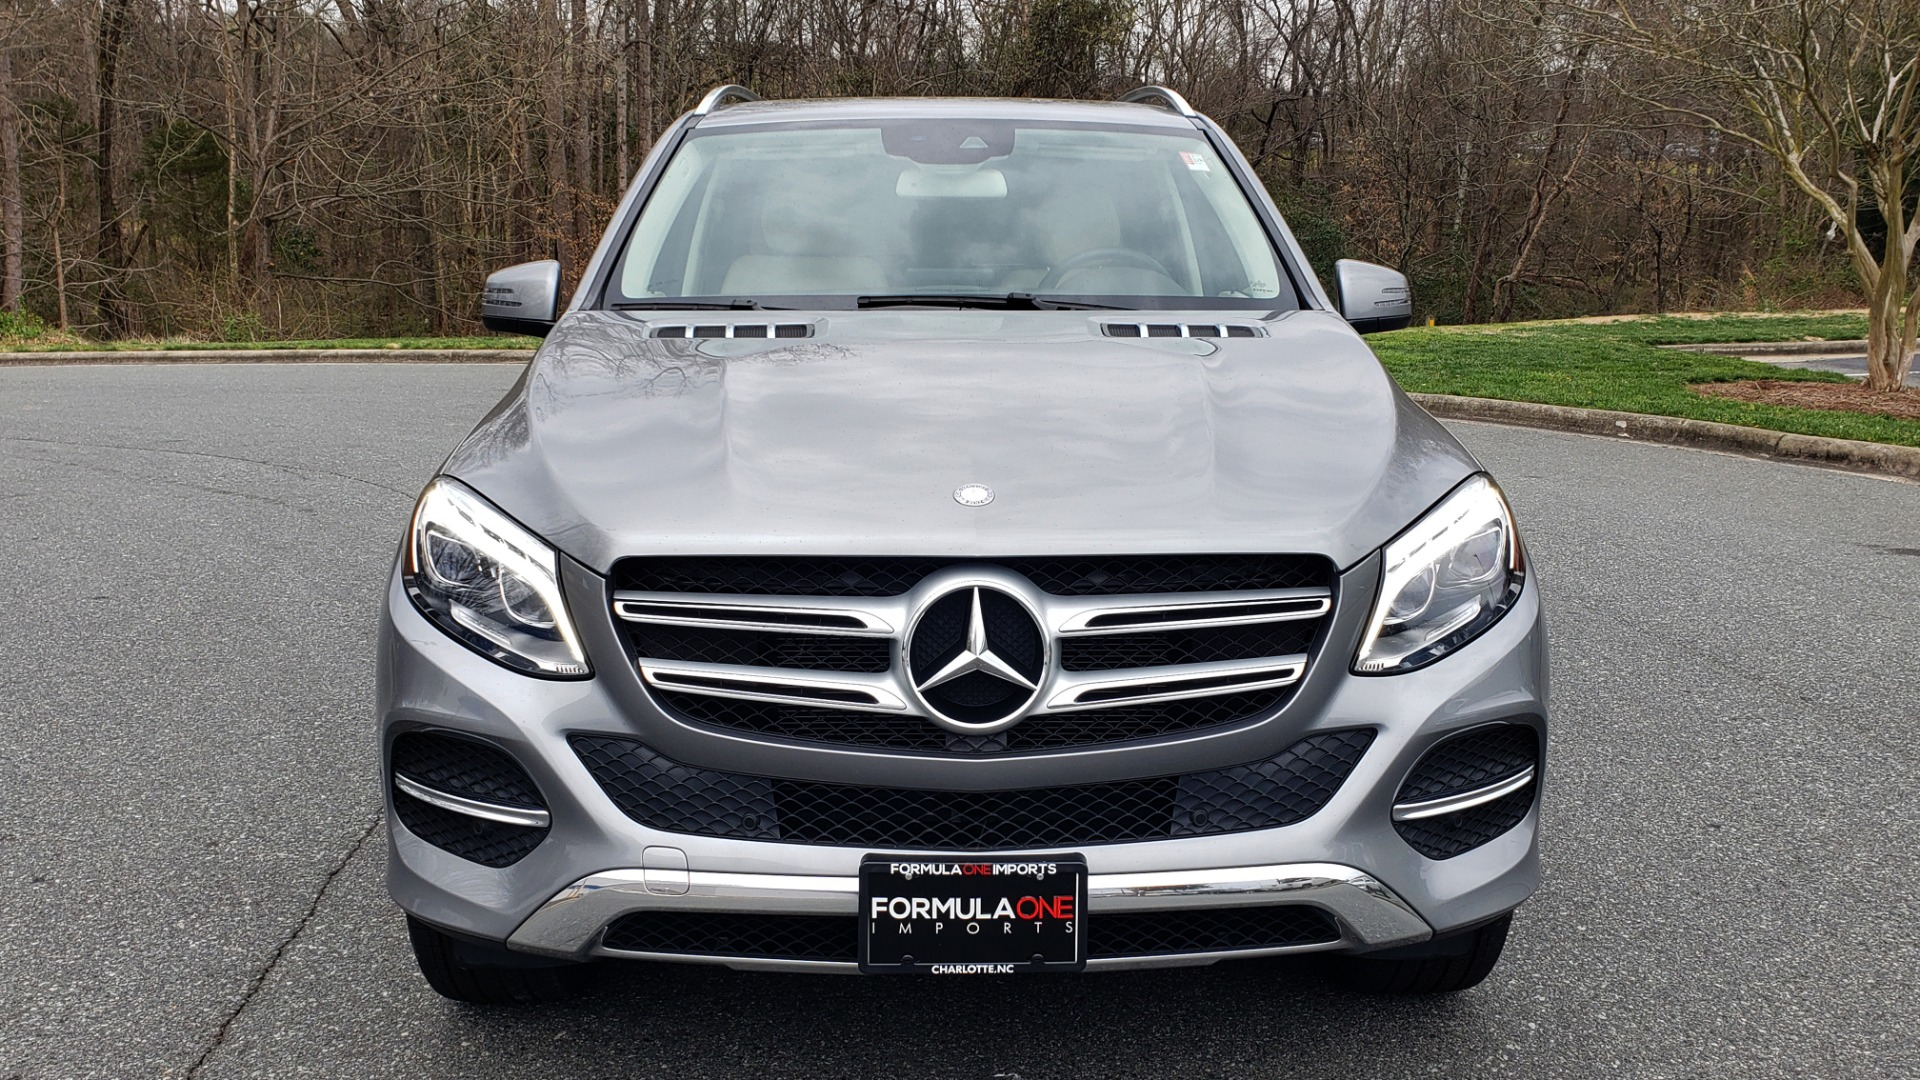 Used 2016 Mercedes-Benz GLE 350 4MATIC / PREMIUM / LIGHTING / NAV / SUNROOF / HTD STS / REAR for sale Sold at Formula Imports in Charlotte NC 28227 23